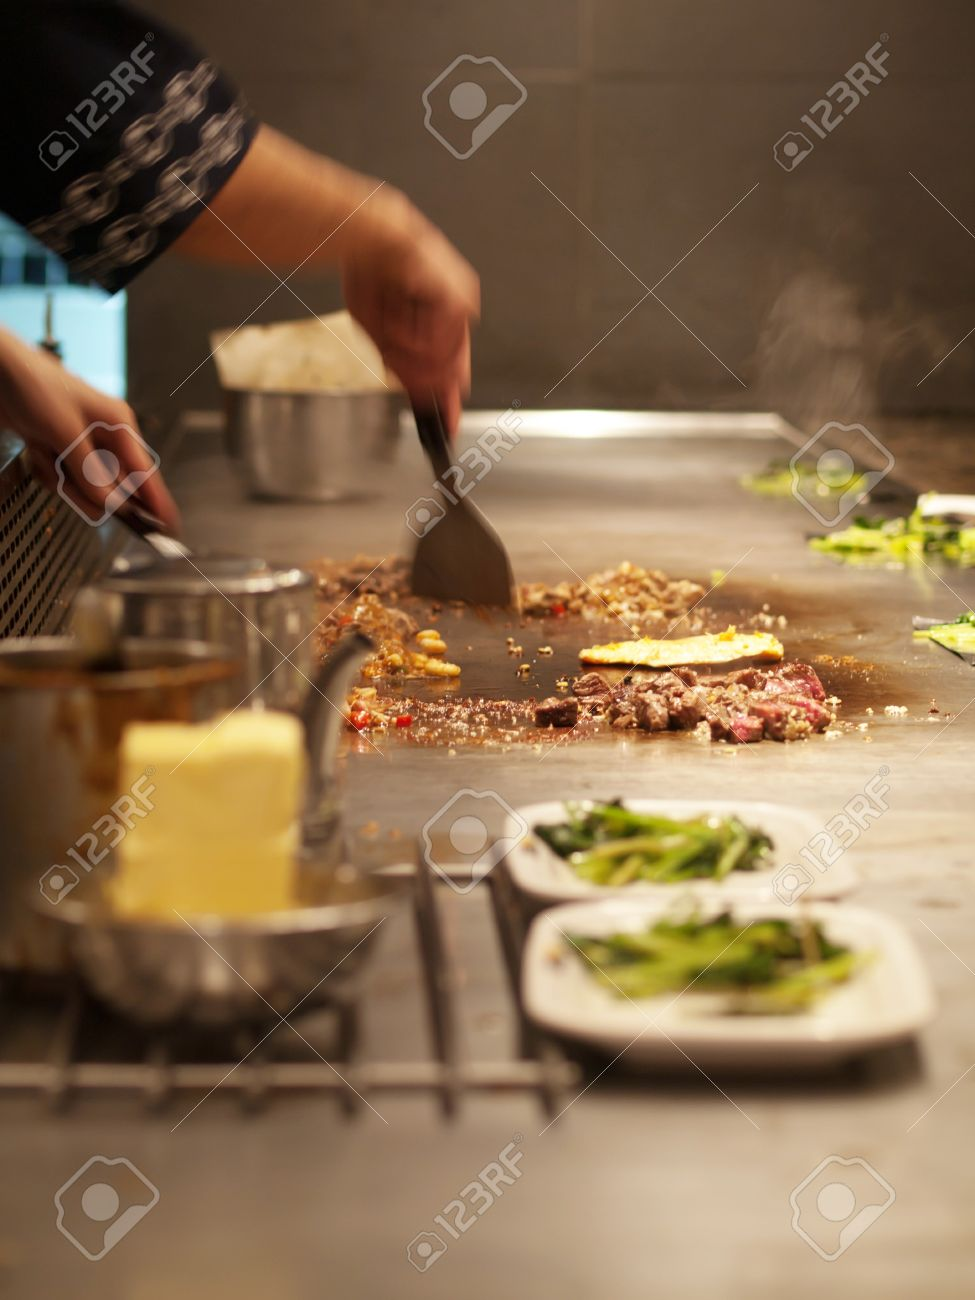 Chef Cooking Meat On A Hot Plate In A Japanese Grill Restaurant Stock Photo Picture And Royalty Free Image Image 7352111